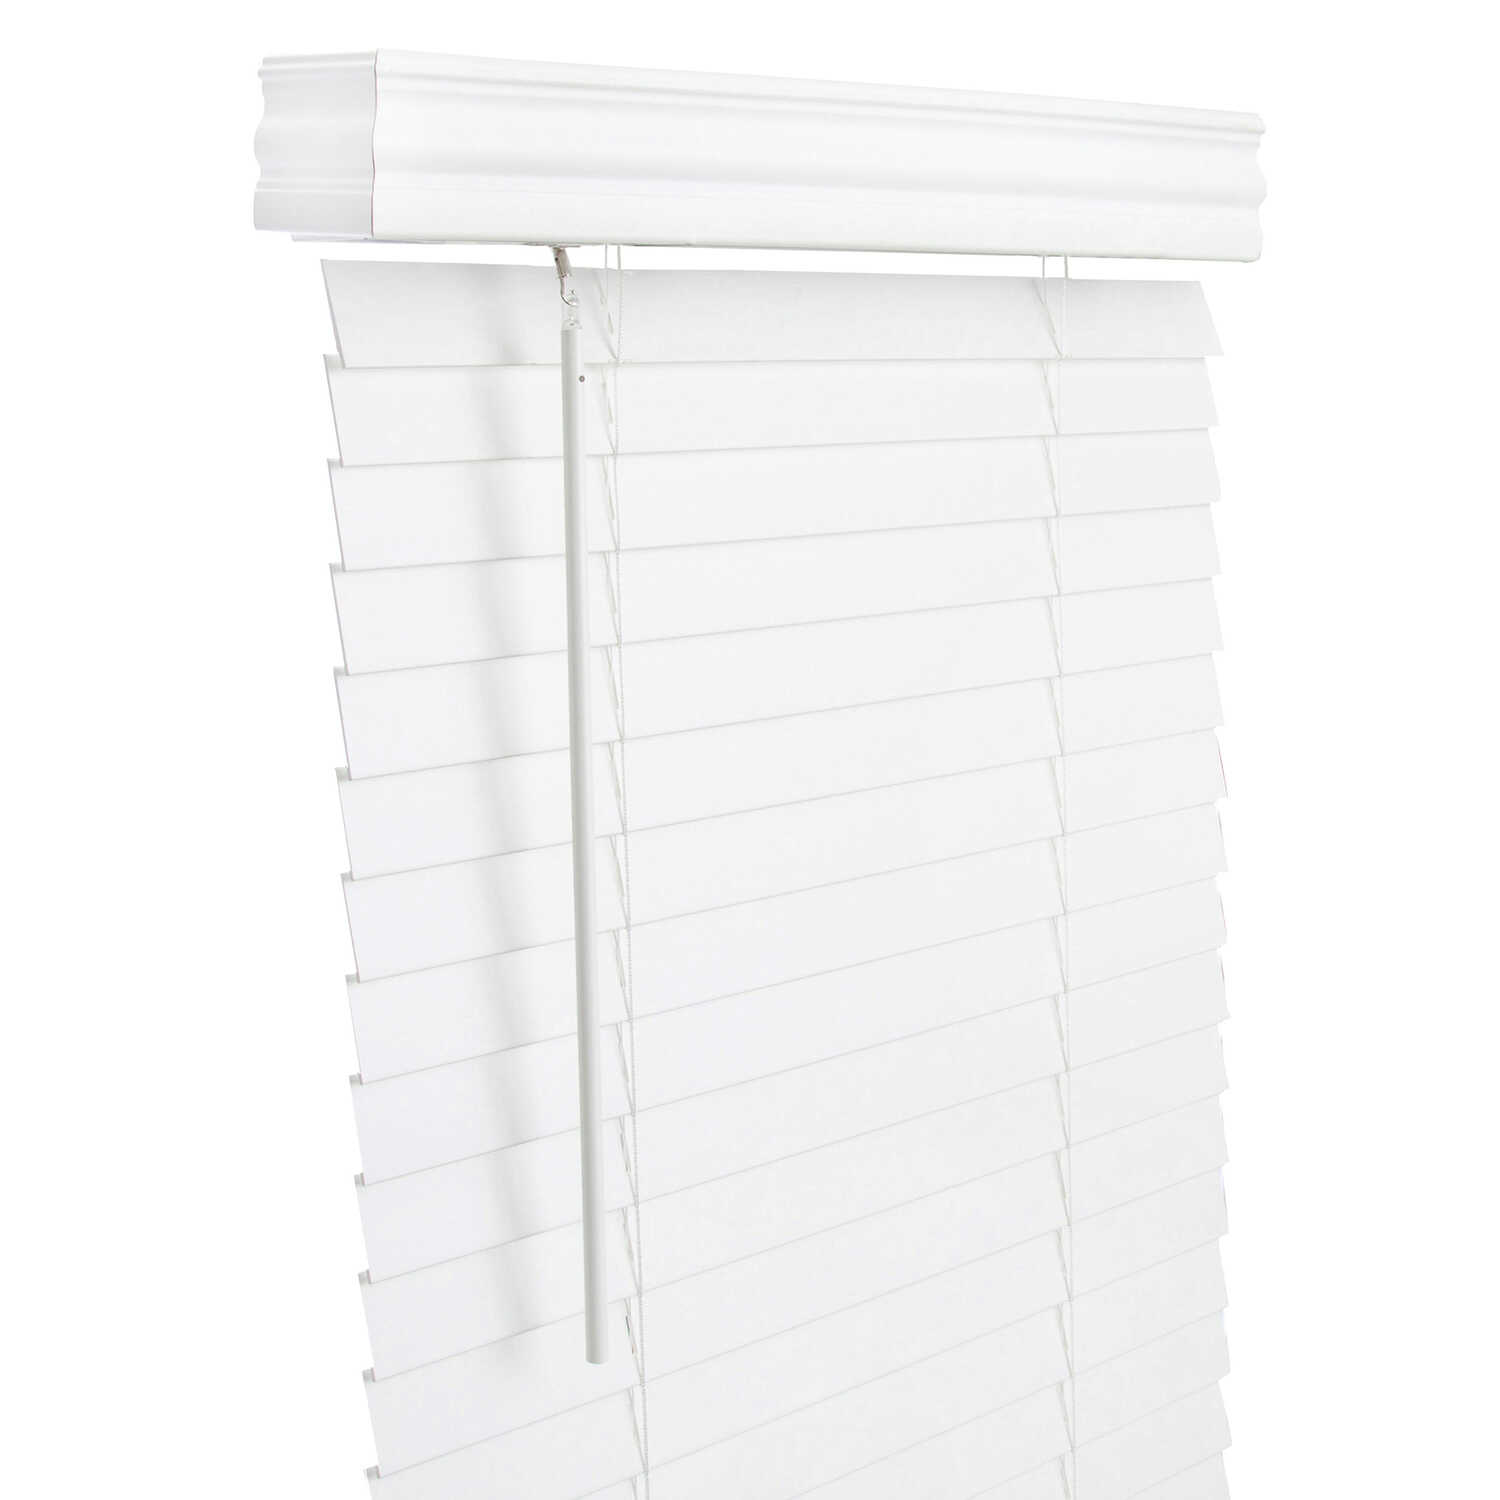 Living Accents  Faux Wood  2 in. Mini-Blinds  27 in. W x 60 in. H White  Cordless